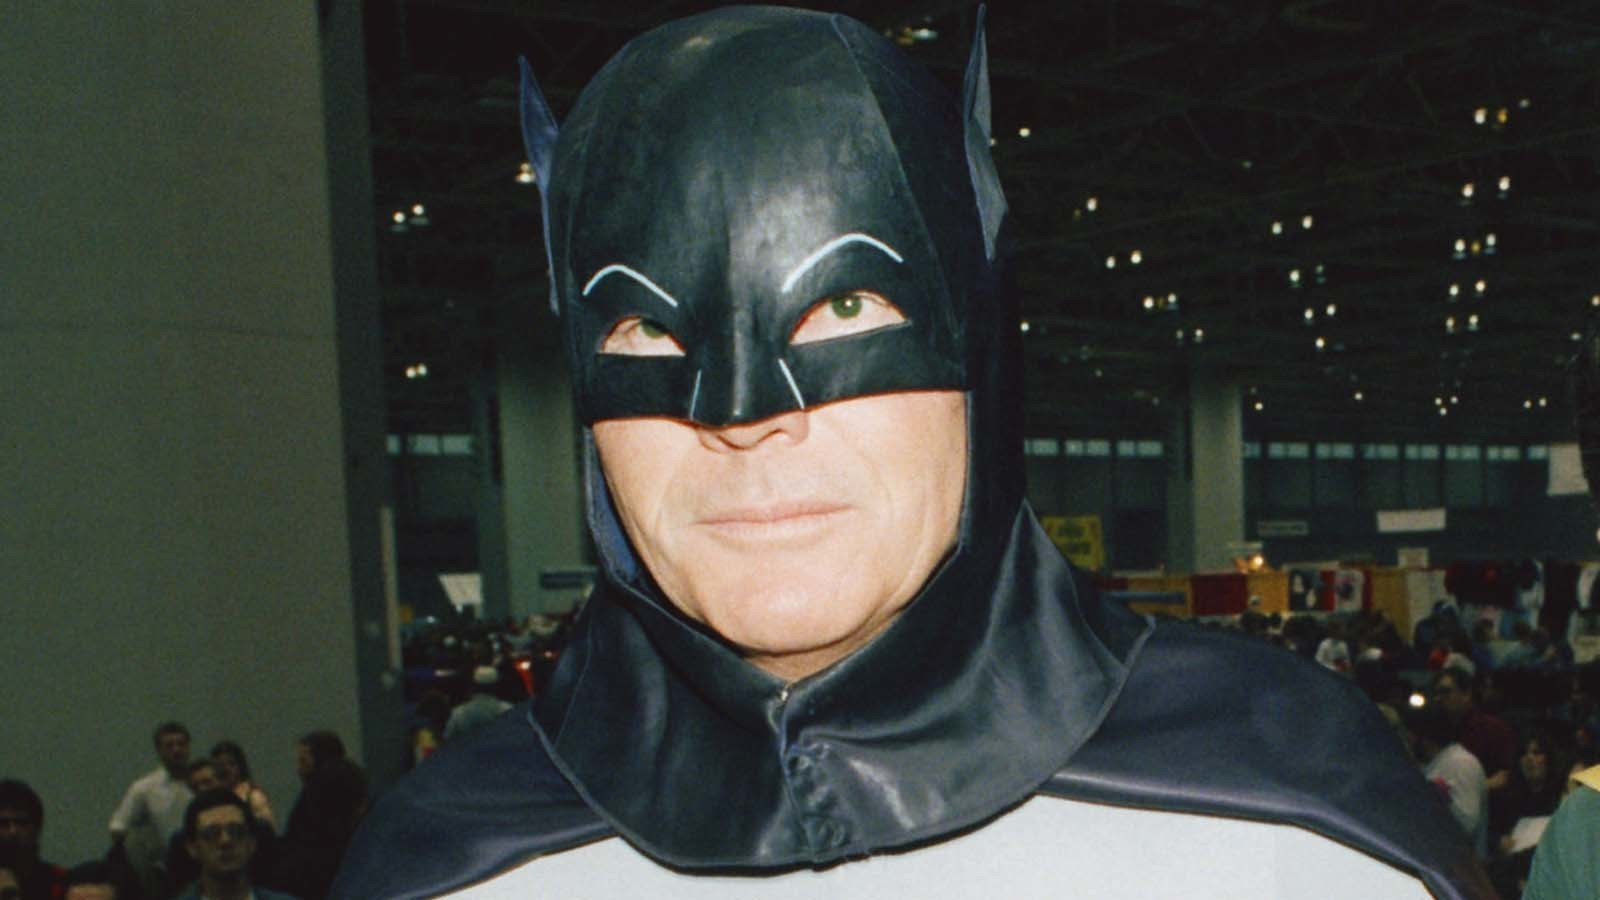 LA Will Light the Bat-Signal to Honor Adam West